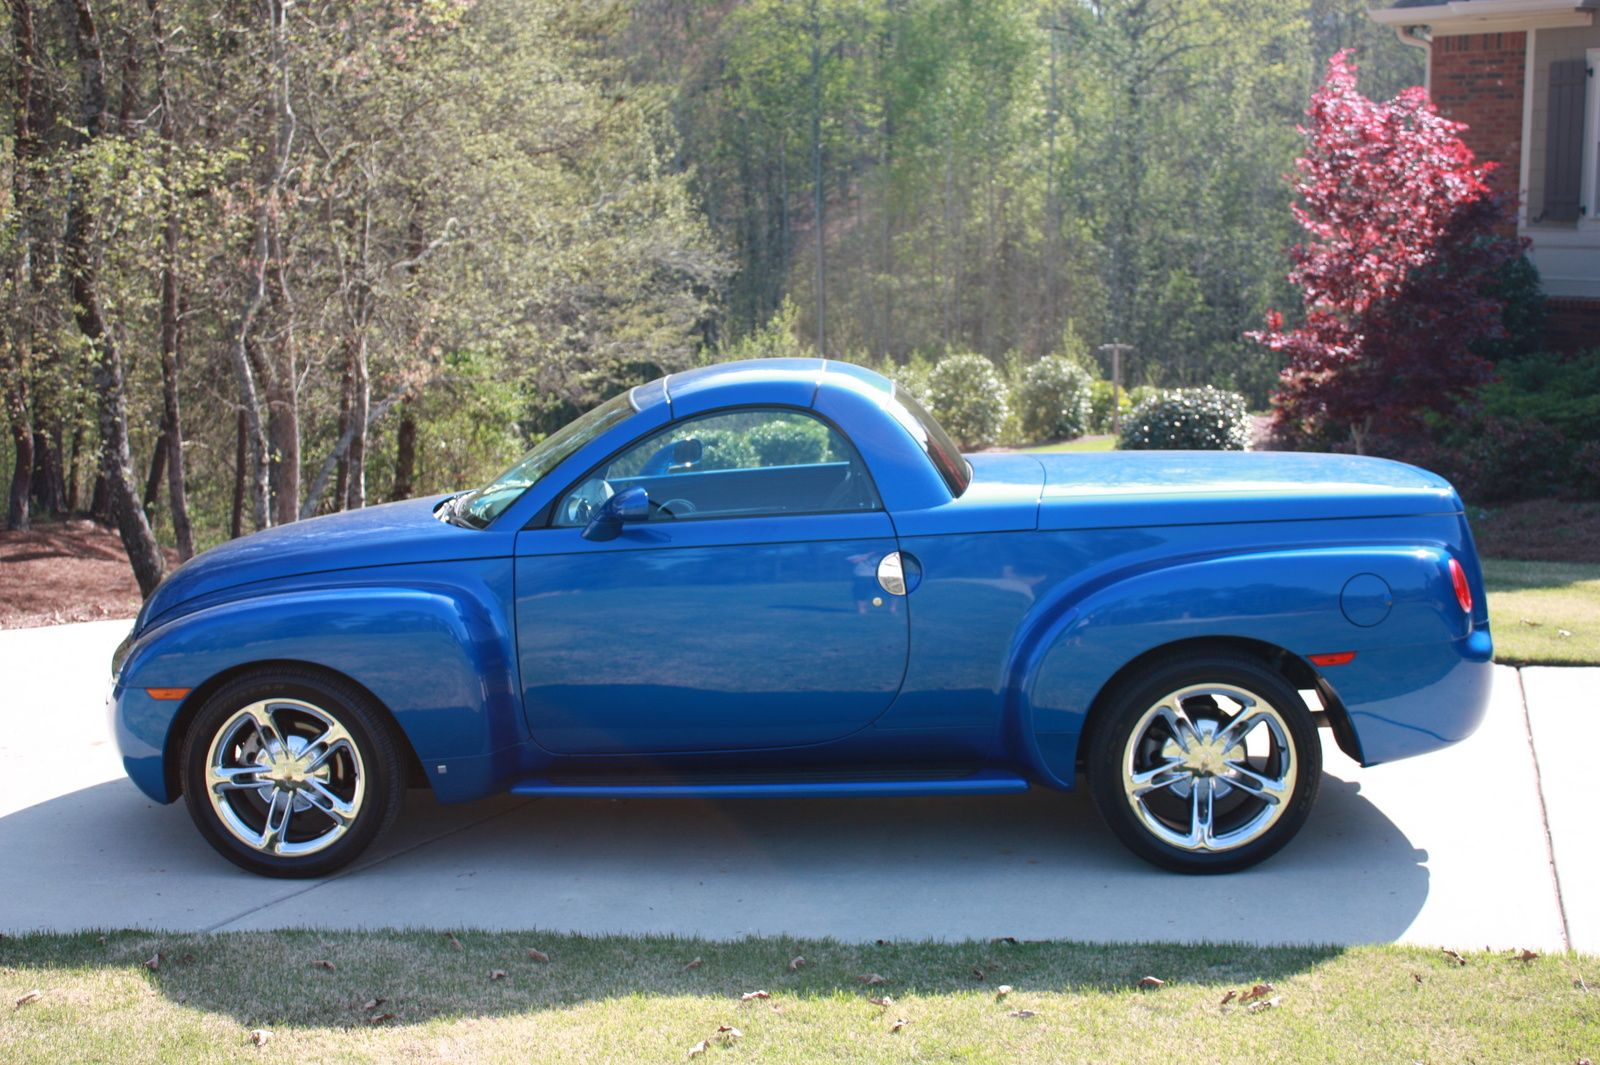 2006 chevrolet ssr 2dr regular cab convertible sb trucks Chevy Tahoe Wiring Diagram  Wiring Diagram for 2005 Chevy Avalanche 8-Way Power Seat Wiring Diagram Chevy Uplander Wiring Diagram